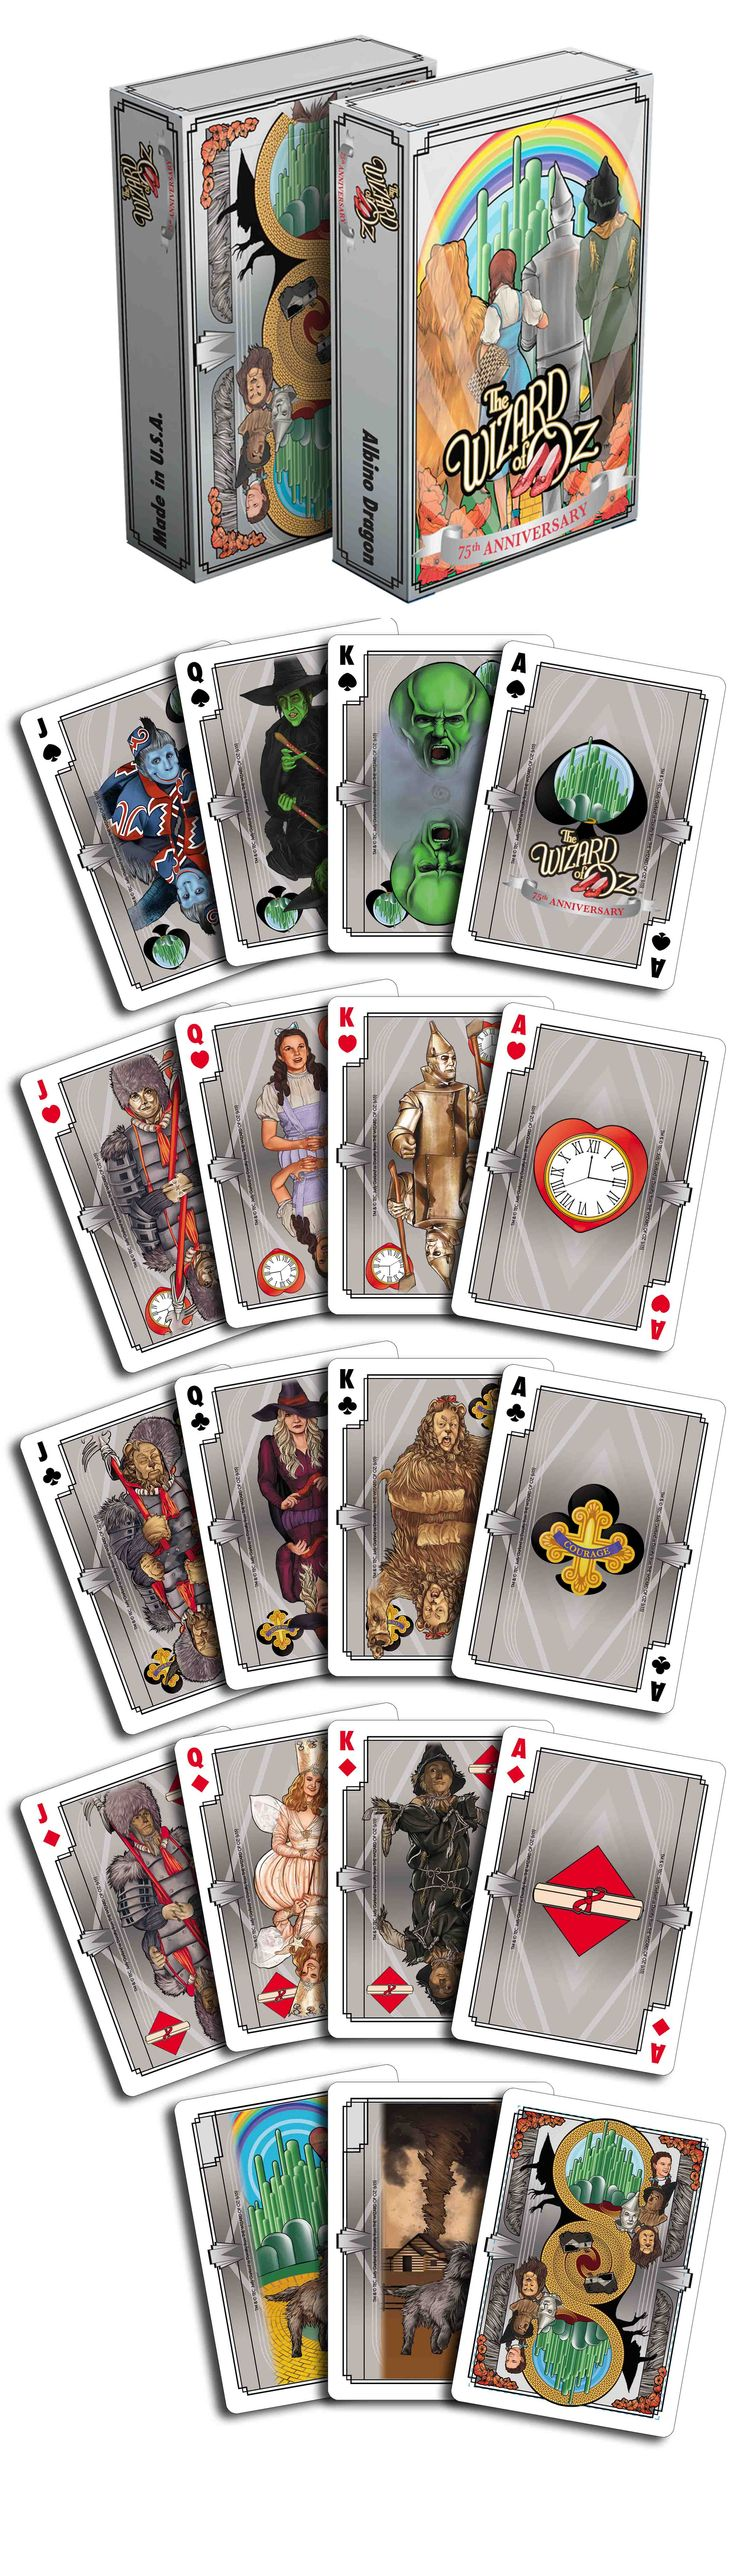 The Wizard of Oz 75th Anniversary in Oz by Albino Dragon. The tuck box is silver foil, so you can see yourself in Oz! ;) These are beautiful.  Now available on www.albinodragon.com